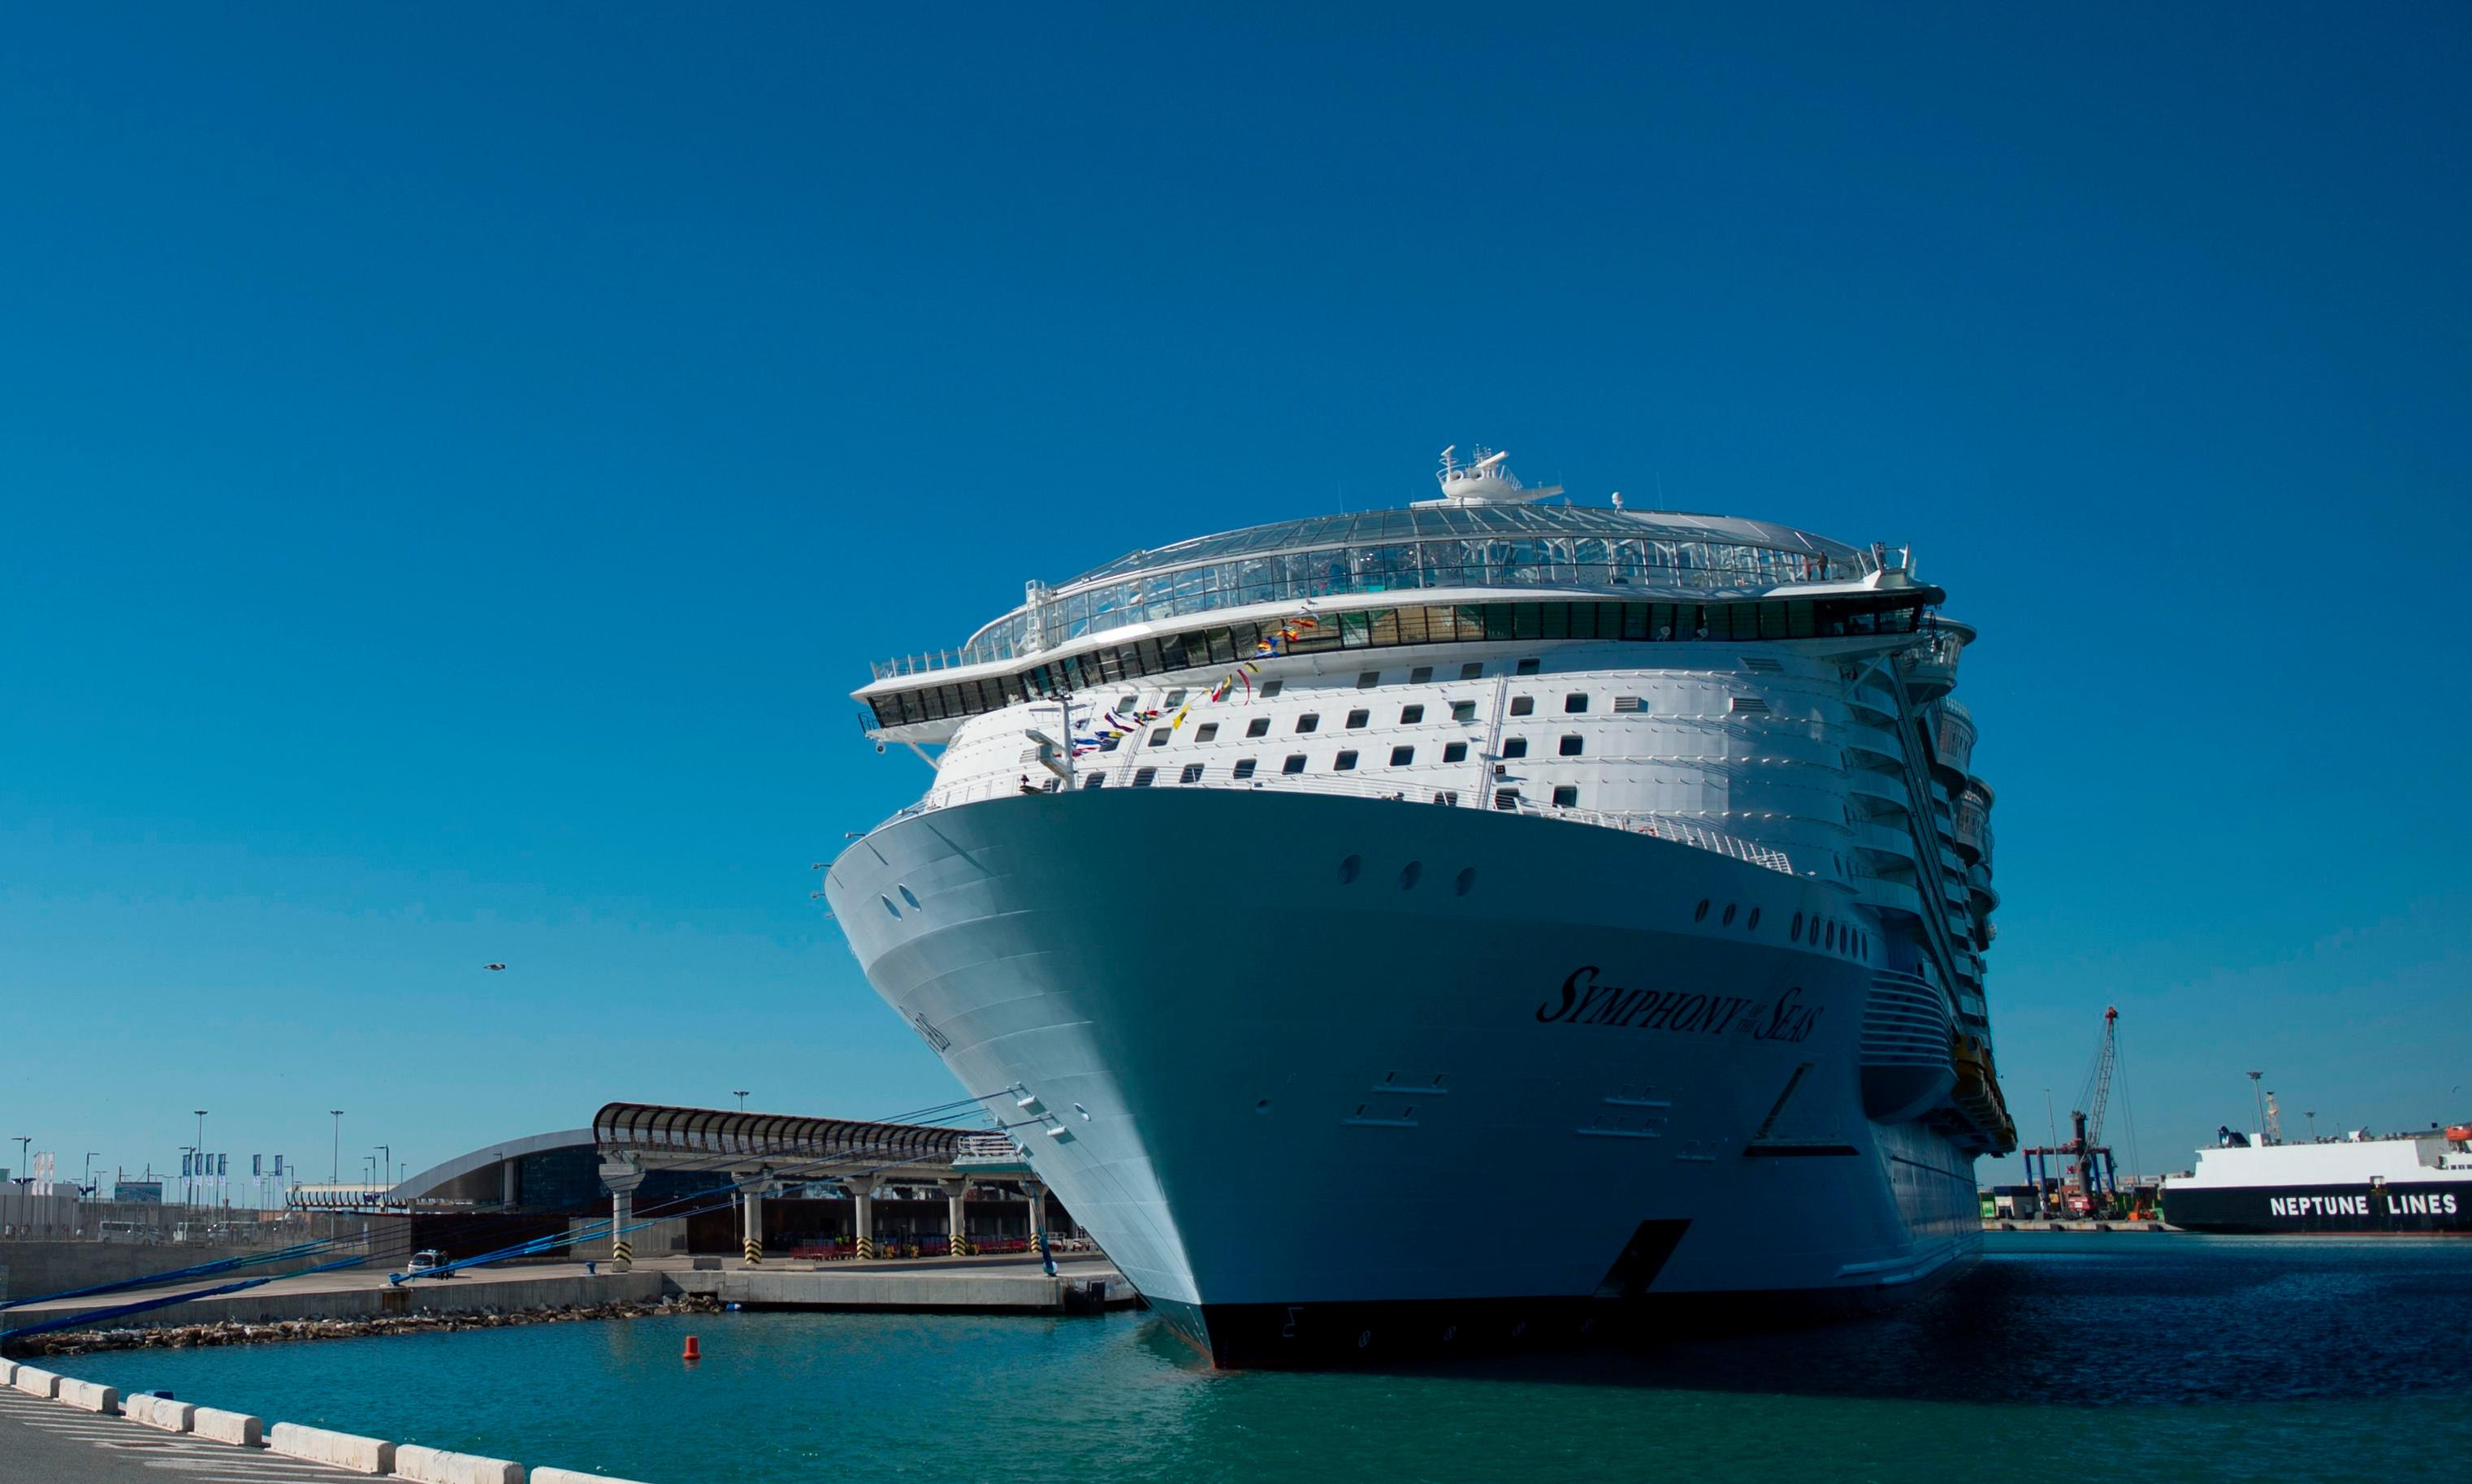 Australian man dead after falling from Royal Caribbean cruise ship